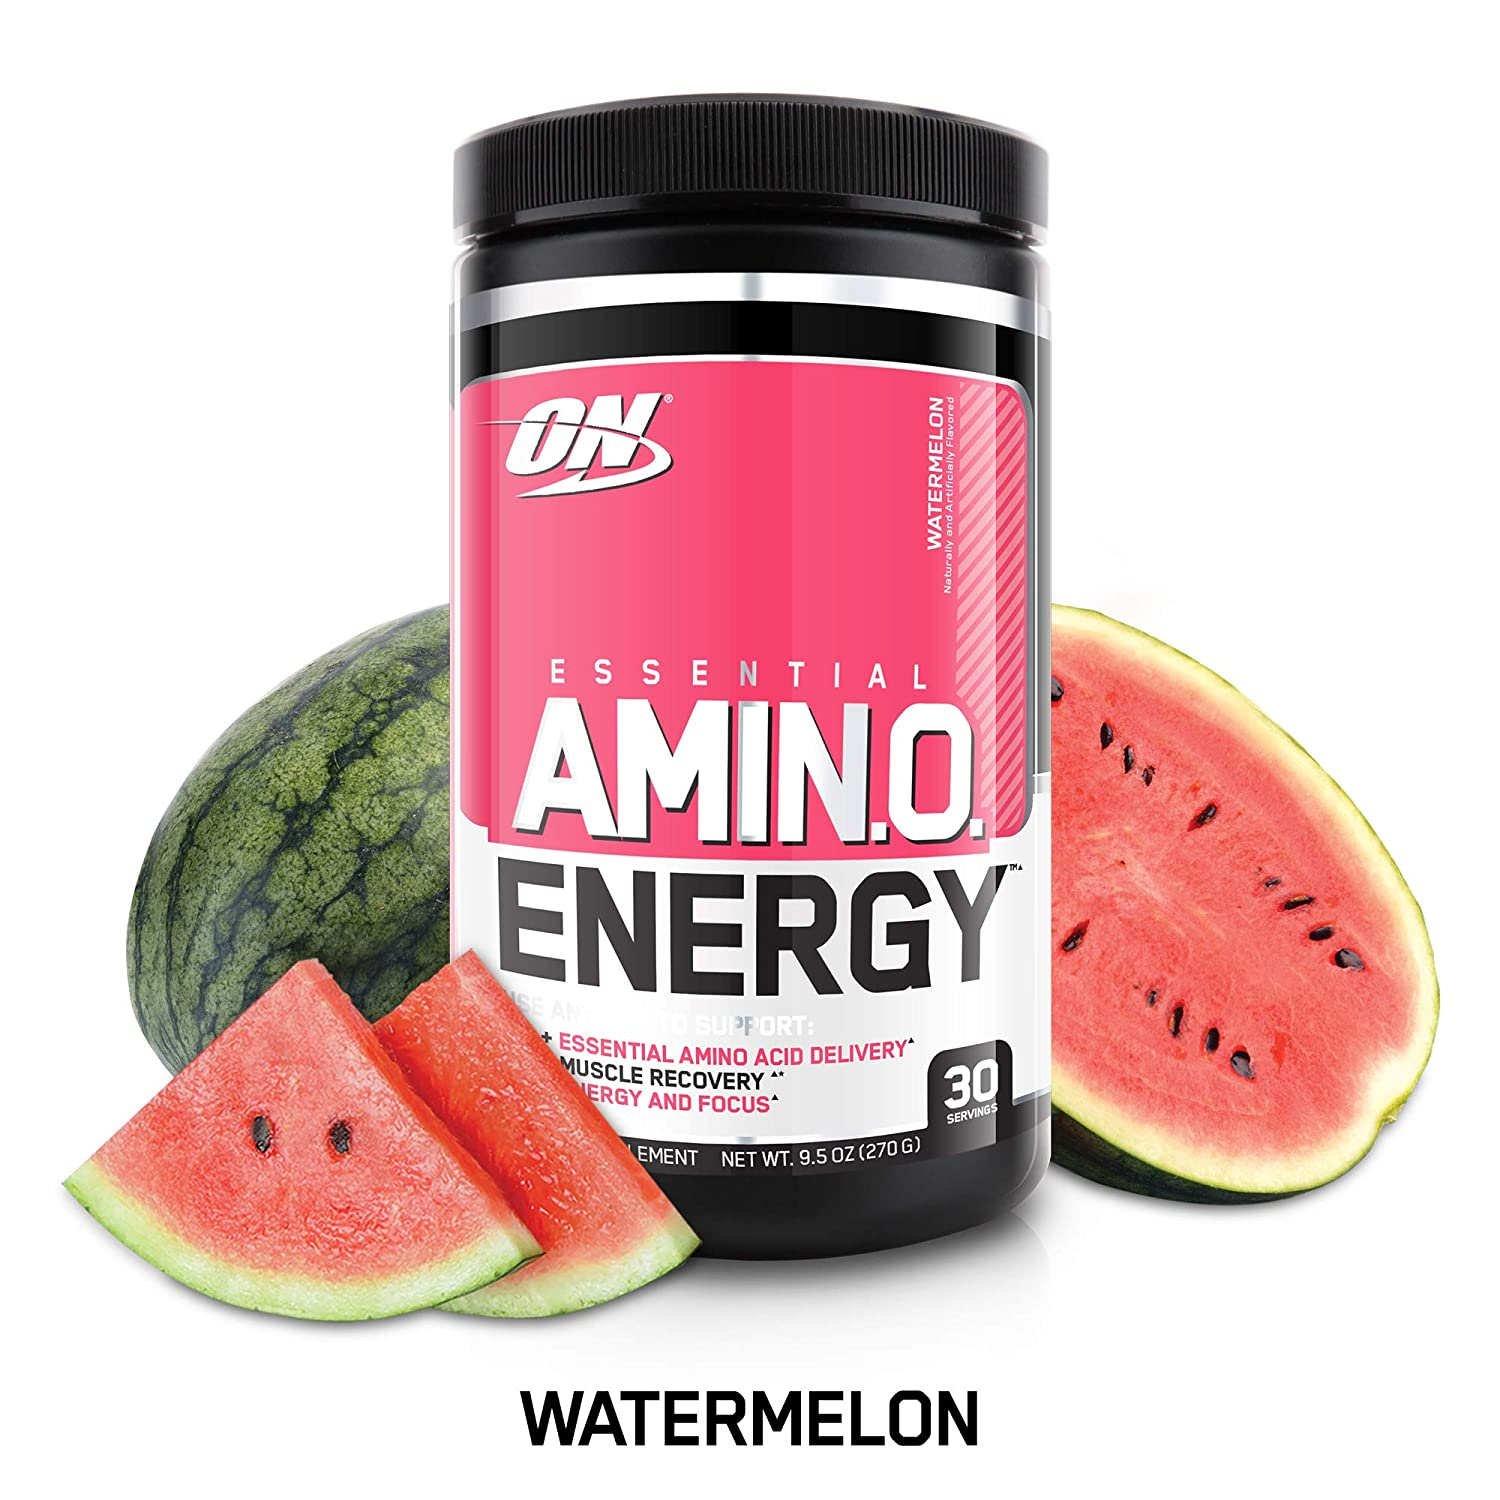 OPTIMUM NUTRITION ESSENTIAL AMINO ENERGY, Watermelon, Keto Friendly Preworkout and Essential Amino Acids with Green Tea and Green Coffee Extract, BCAA Powder, 30 Servings slvidq5009031